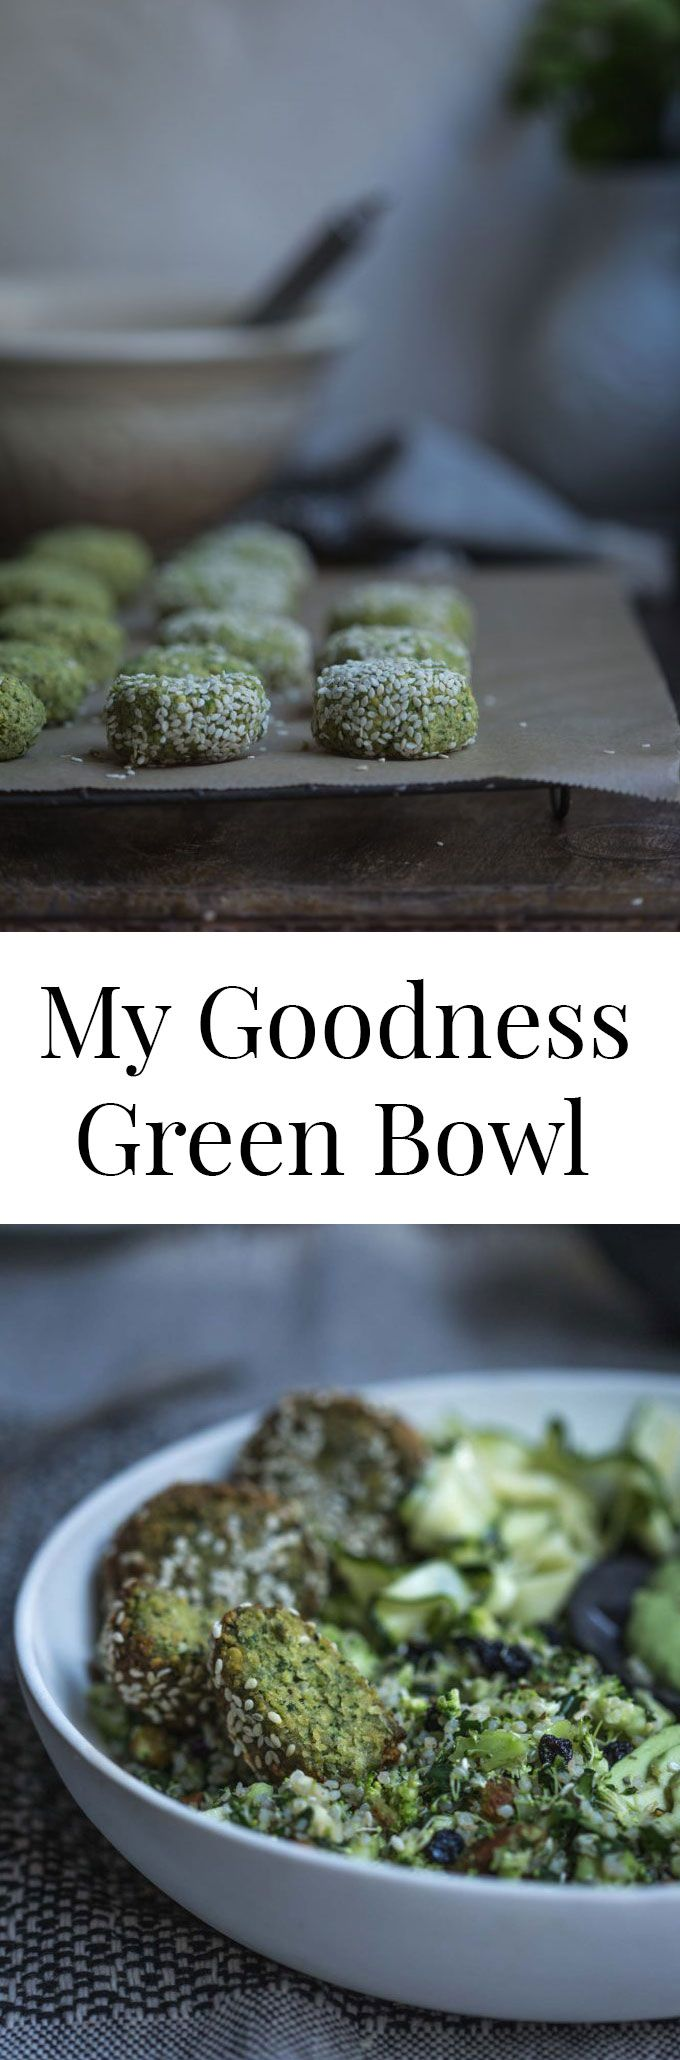 With green spiced falafel, broccoli and spinach tabouleh and coriander green goddess dressing, My Goodness Green Bowl is super charged with good stuff.